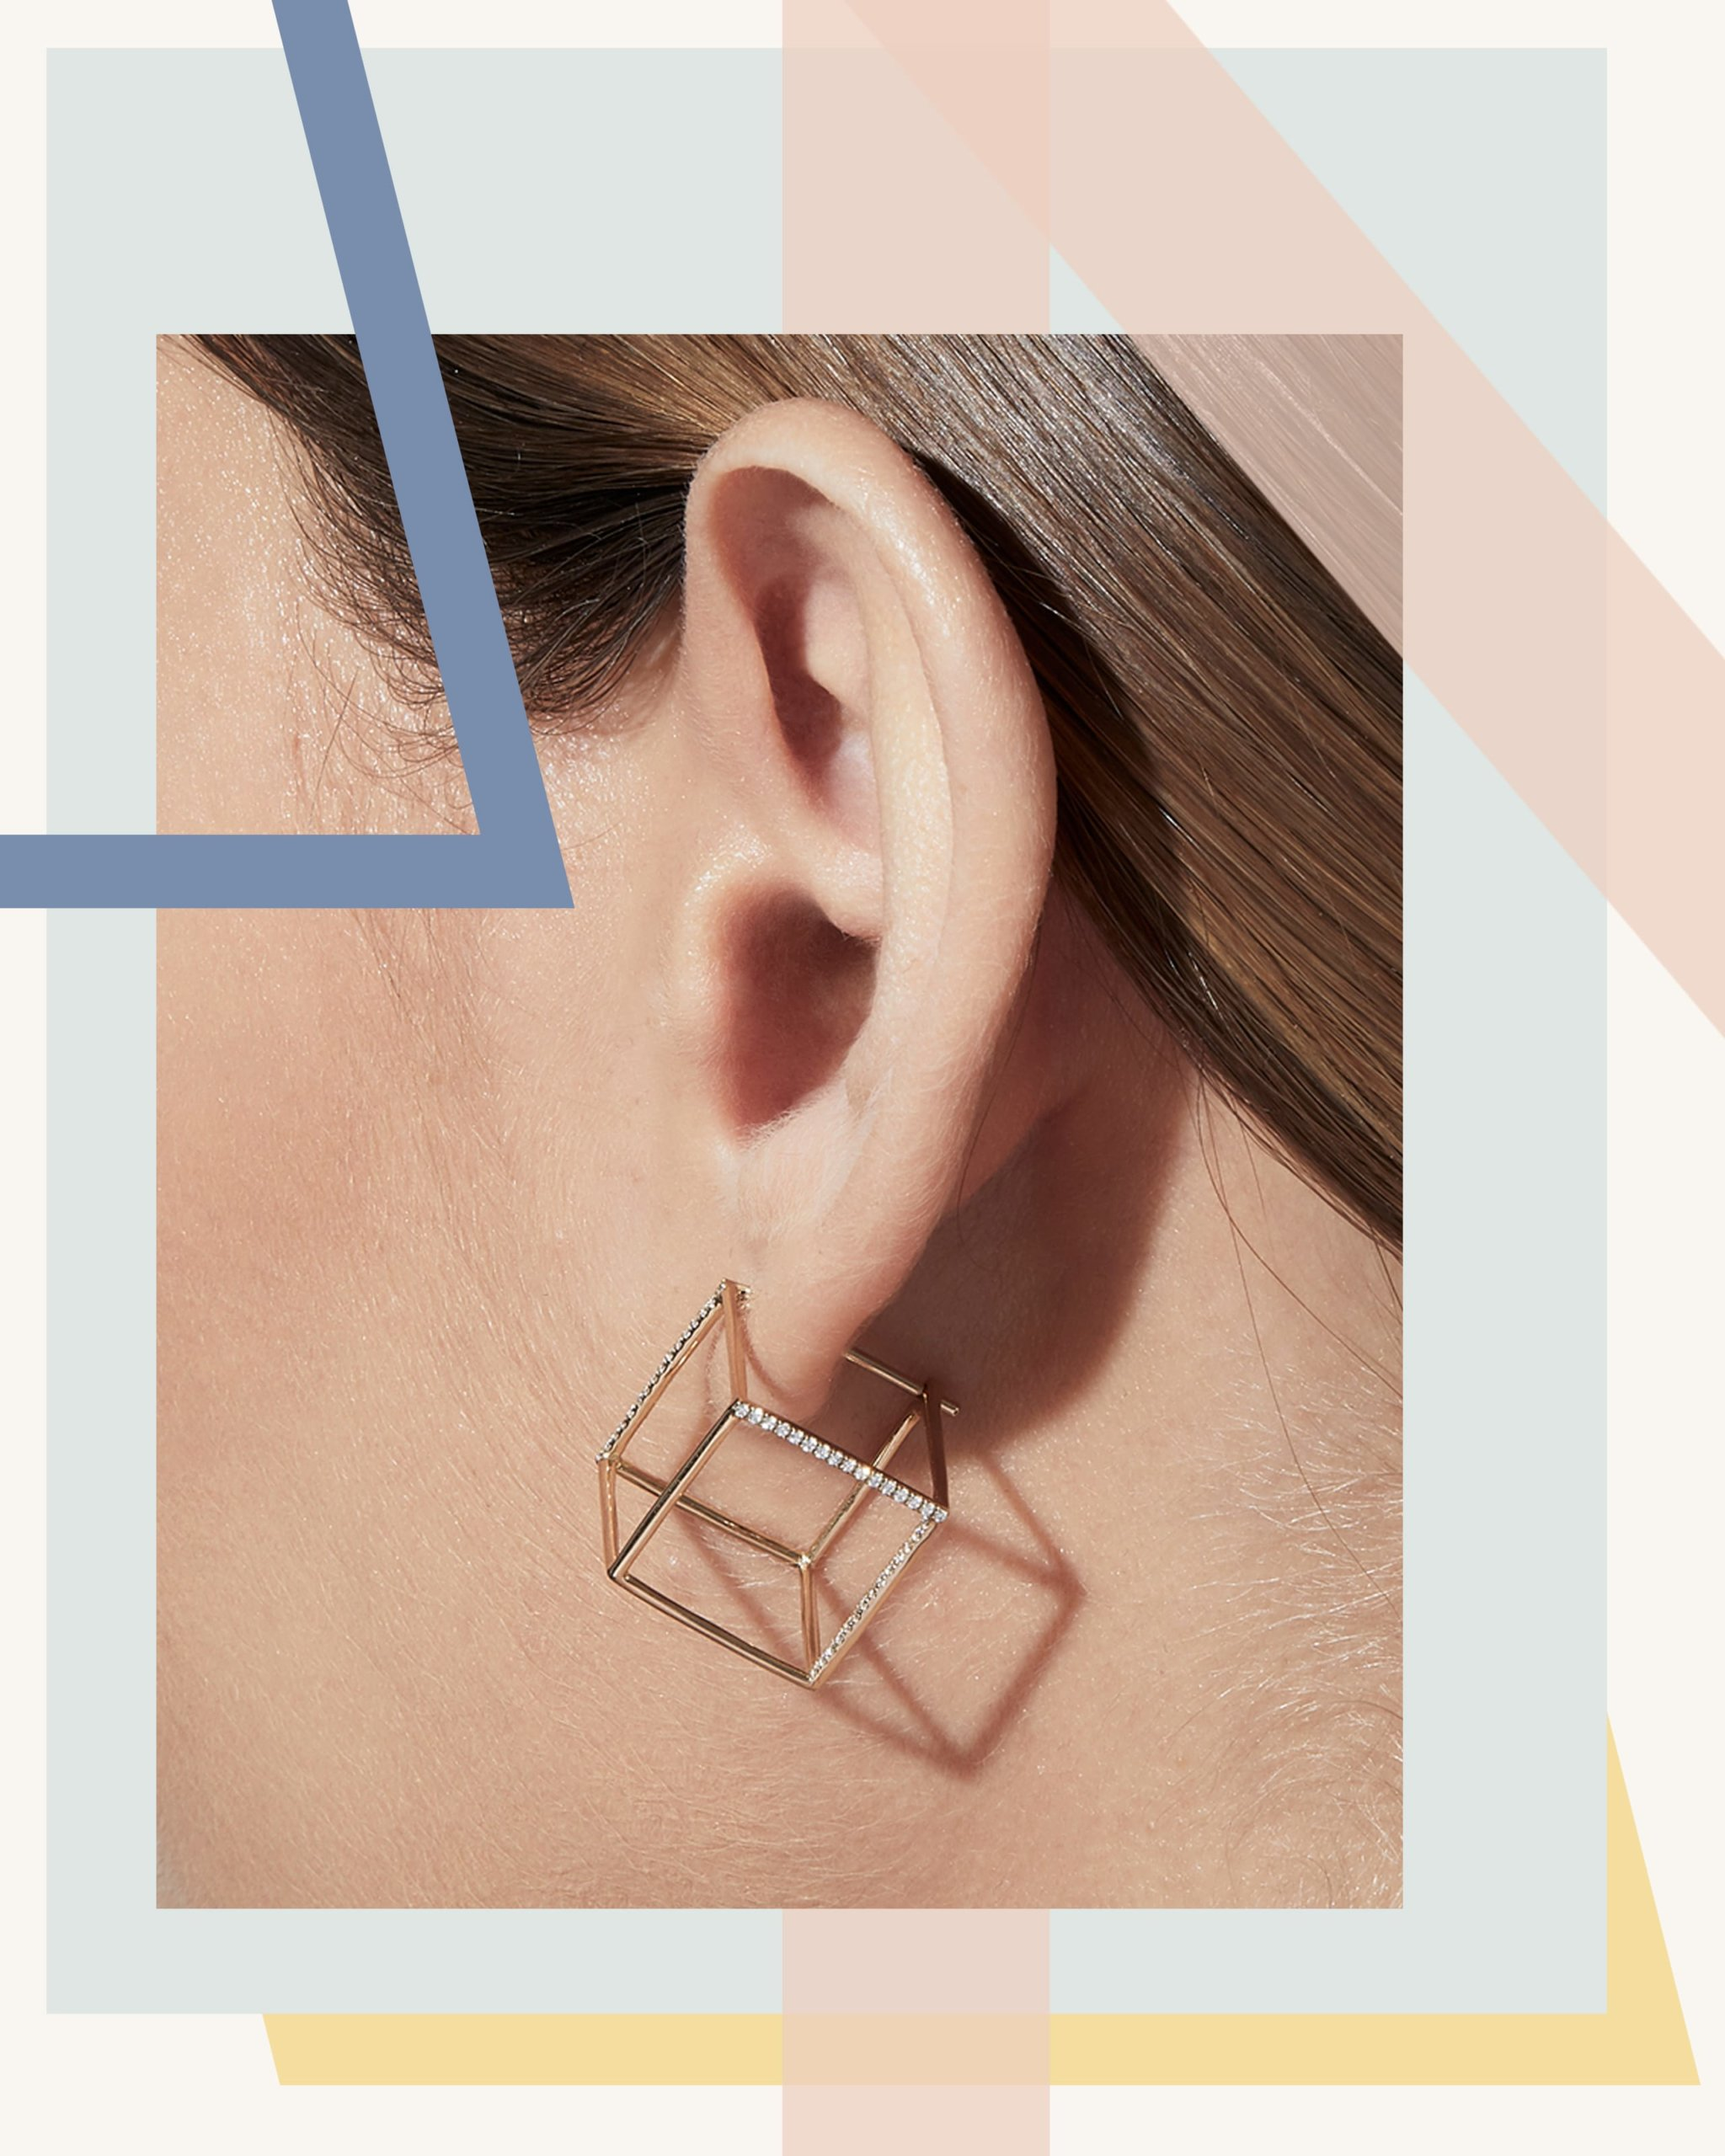 Square diamond earring in gold by Shihara